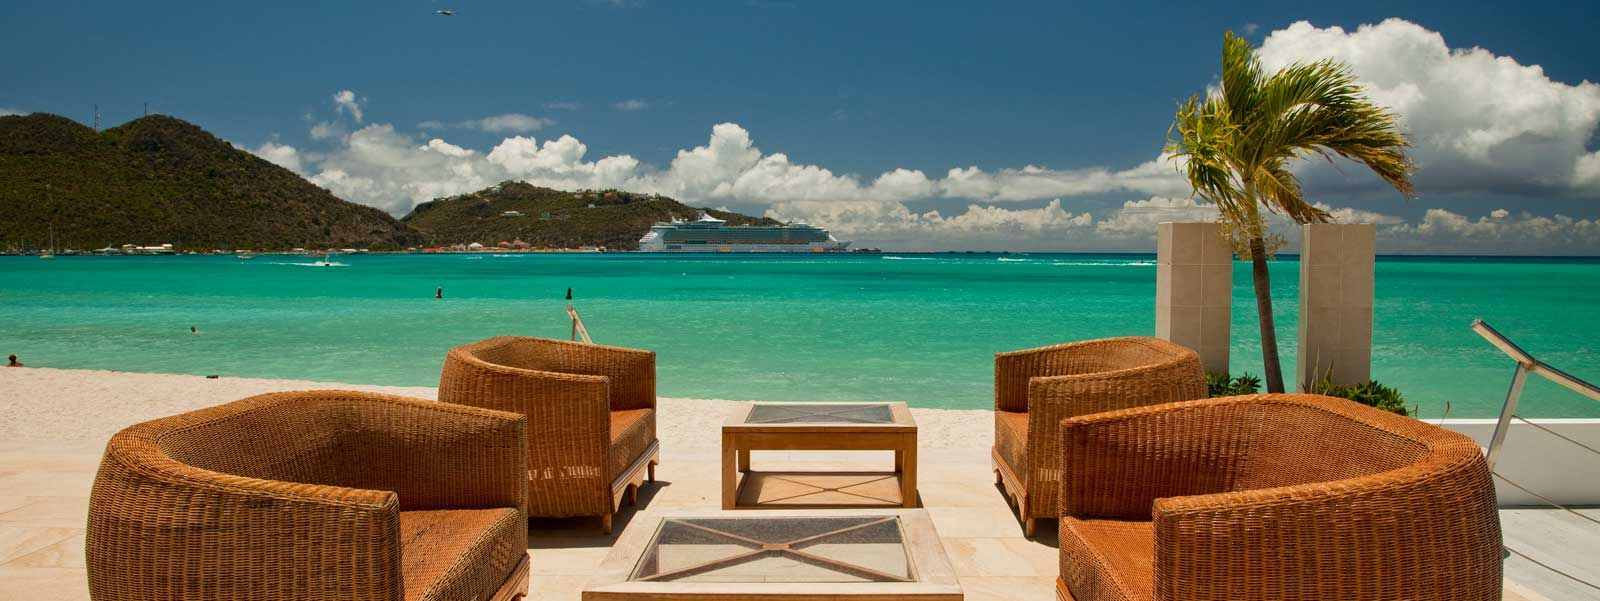 Tripadvisor top 25 all inclusive hotels the tasty traveller for Best resort all inclusive